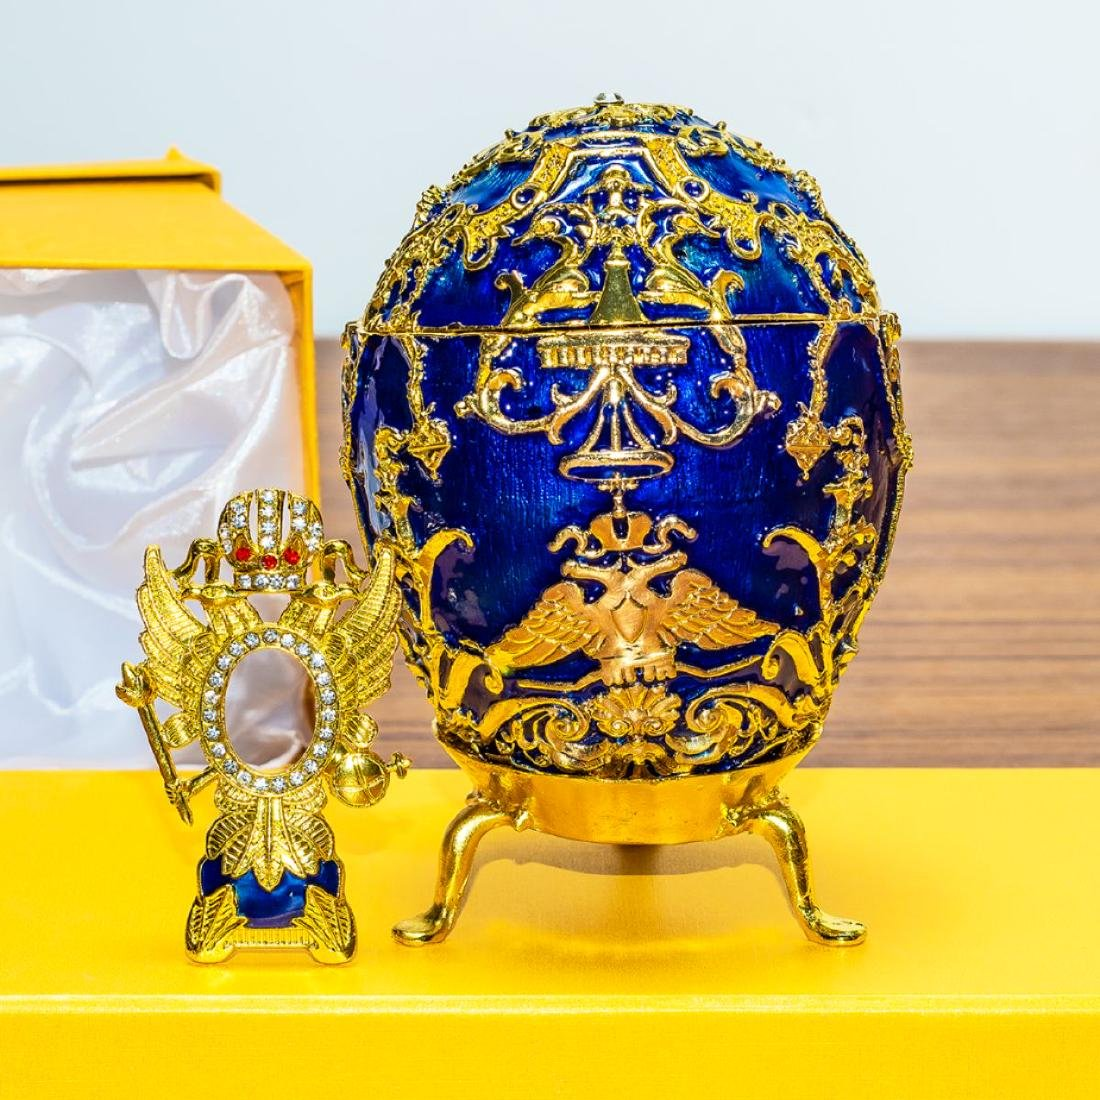 1912 Tsarevich Royal Russian Egg